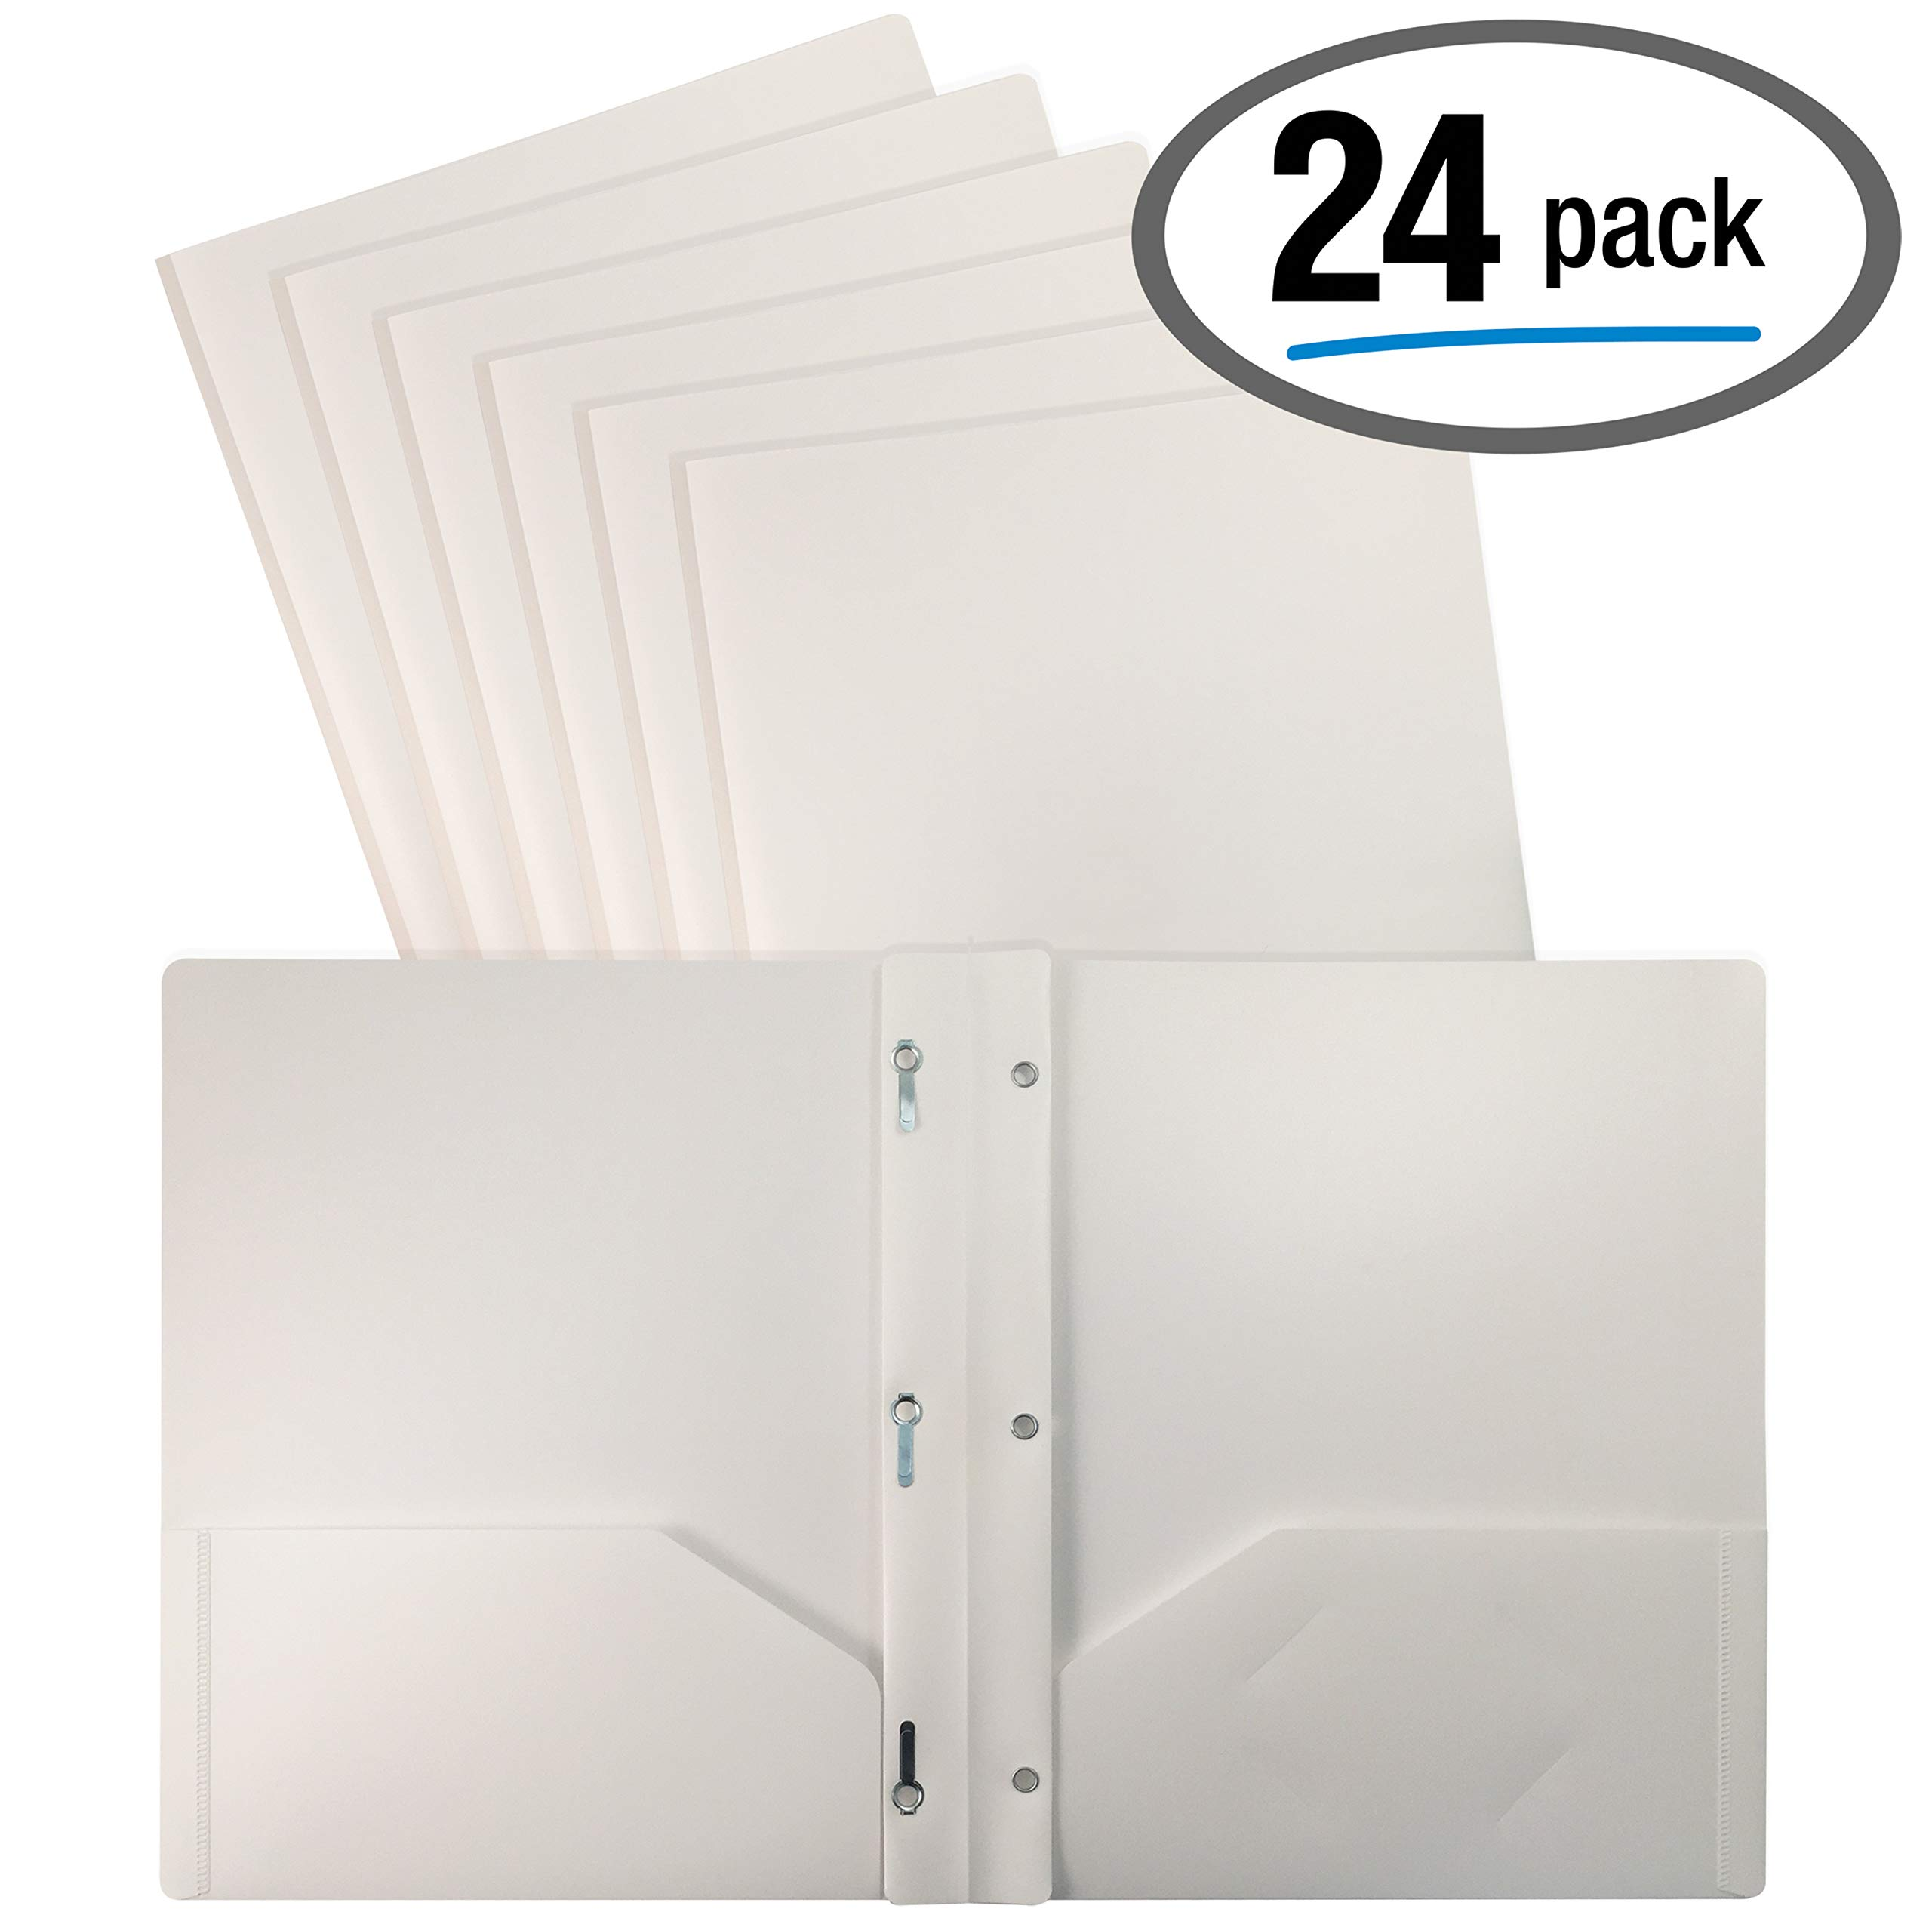 Better Office Products White Plastic 2 Pocket Folders with Prongs, 24 Pack, Heavyweight, Letter Size Poly Folders with 3 Metal Prongs Fastener Clips, White by Better Office Products